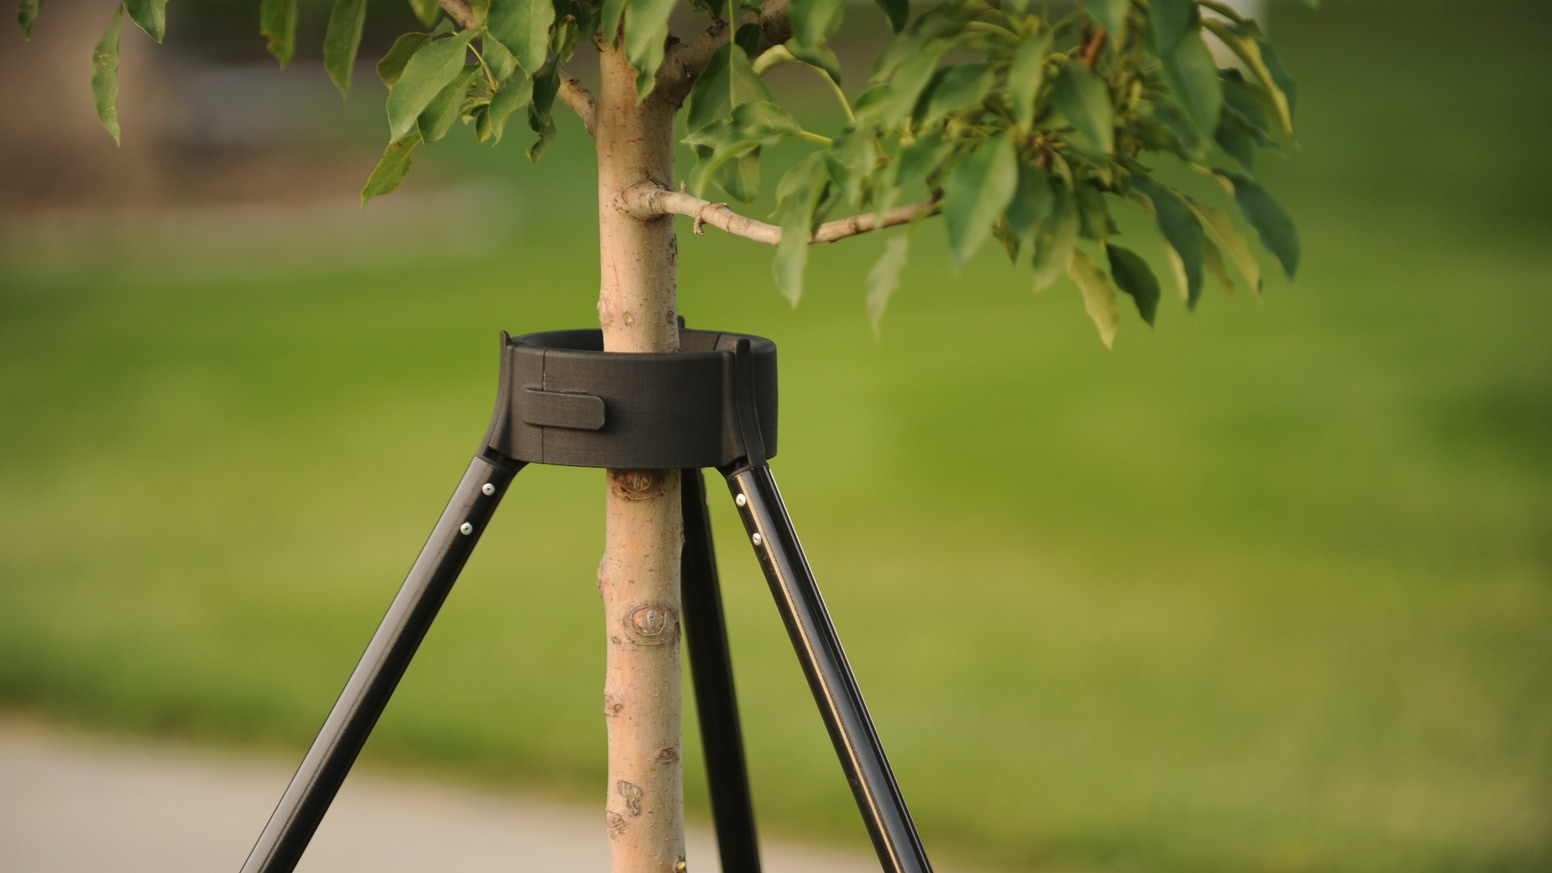 The first easy-to-install tree support that helps your trees grow as naturally as possible without disrupting your tree